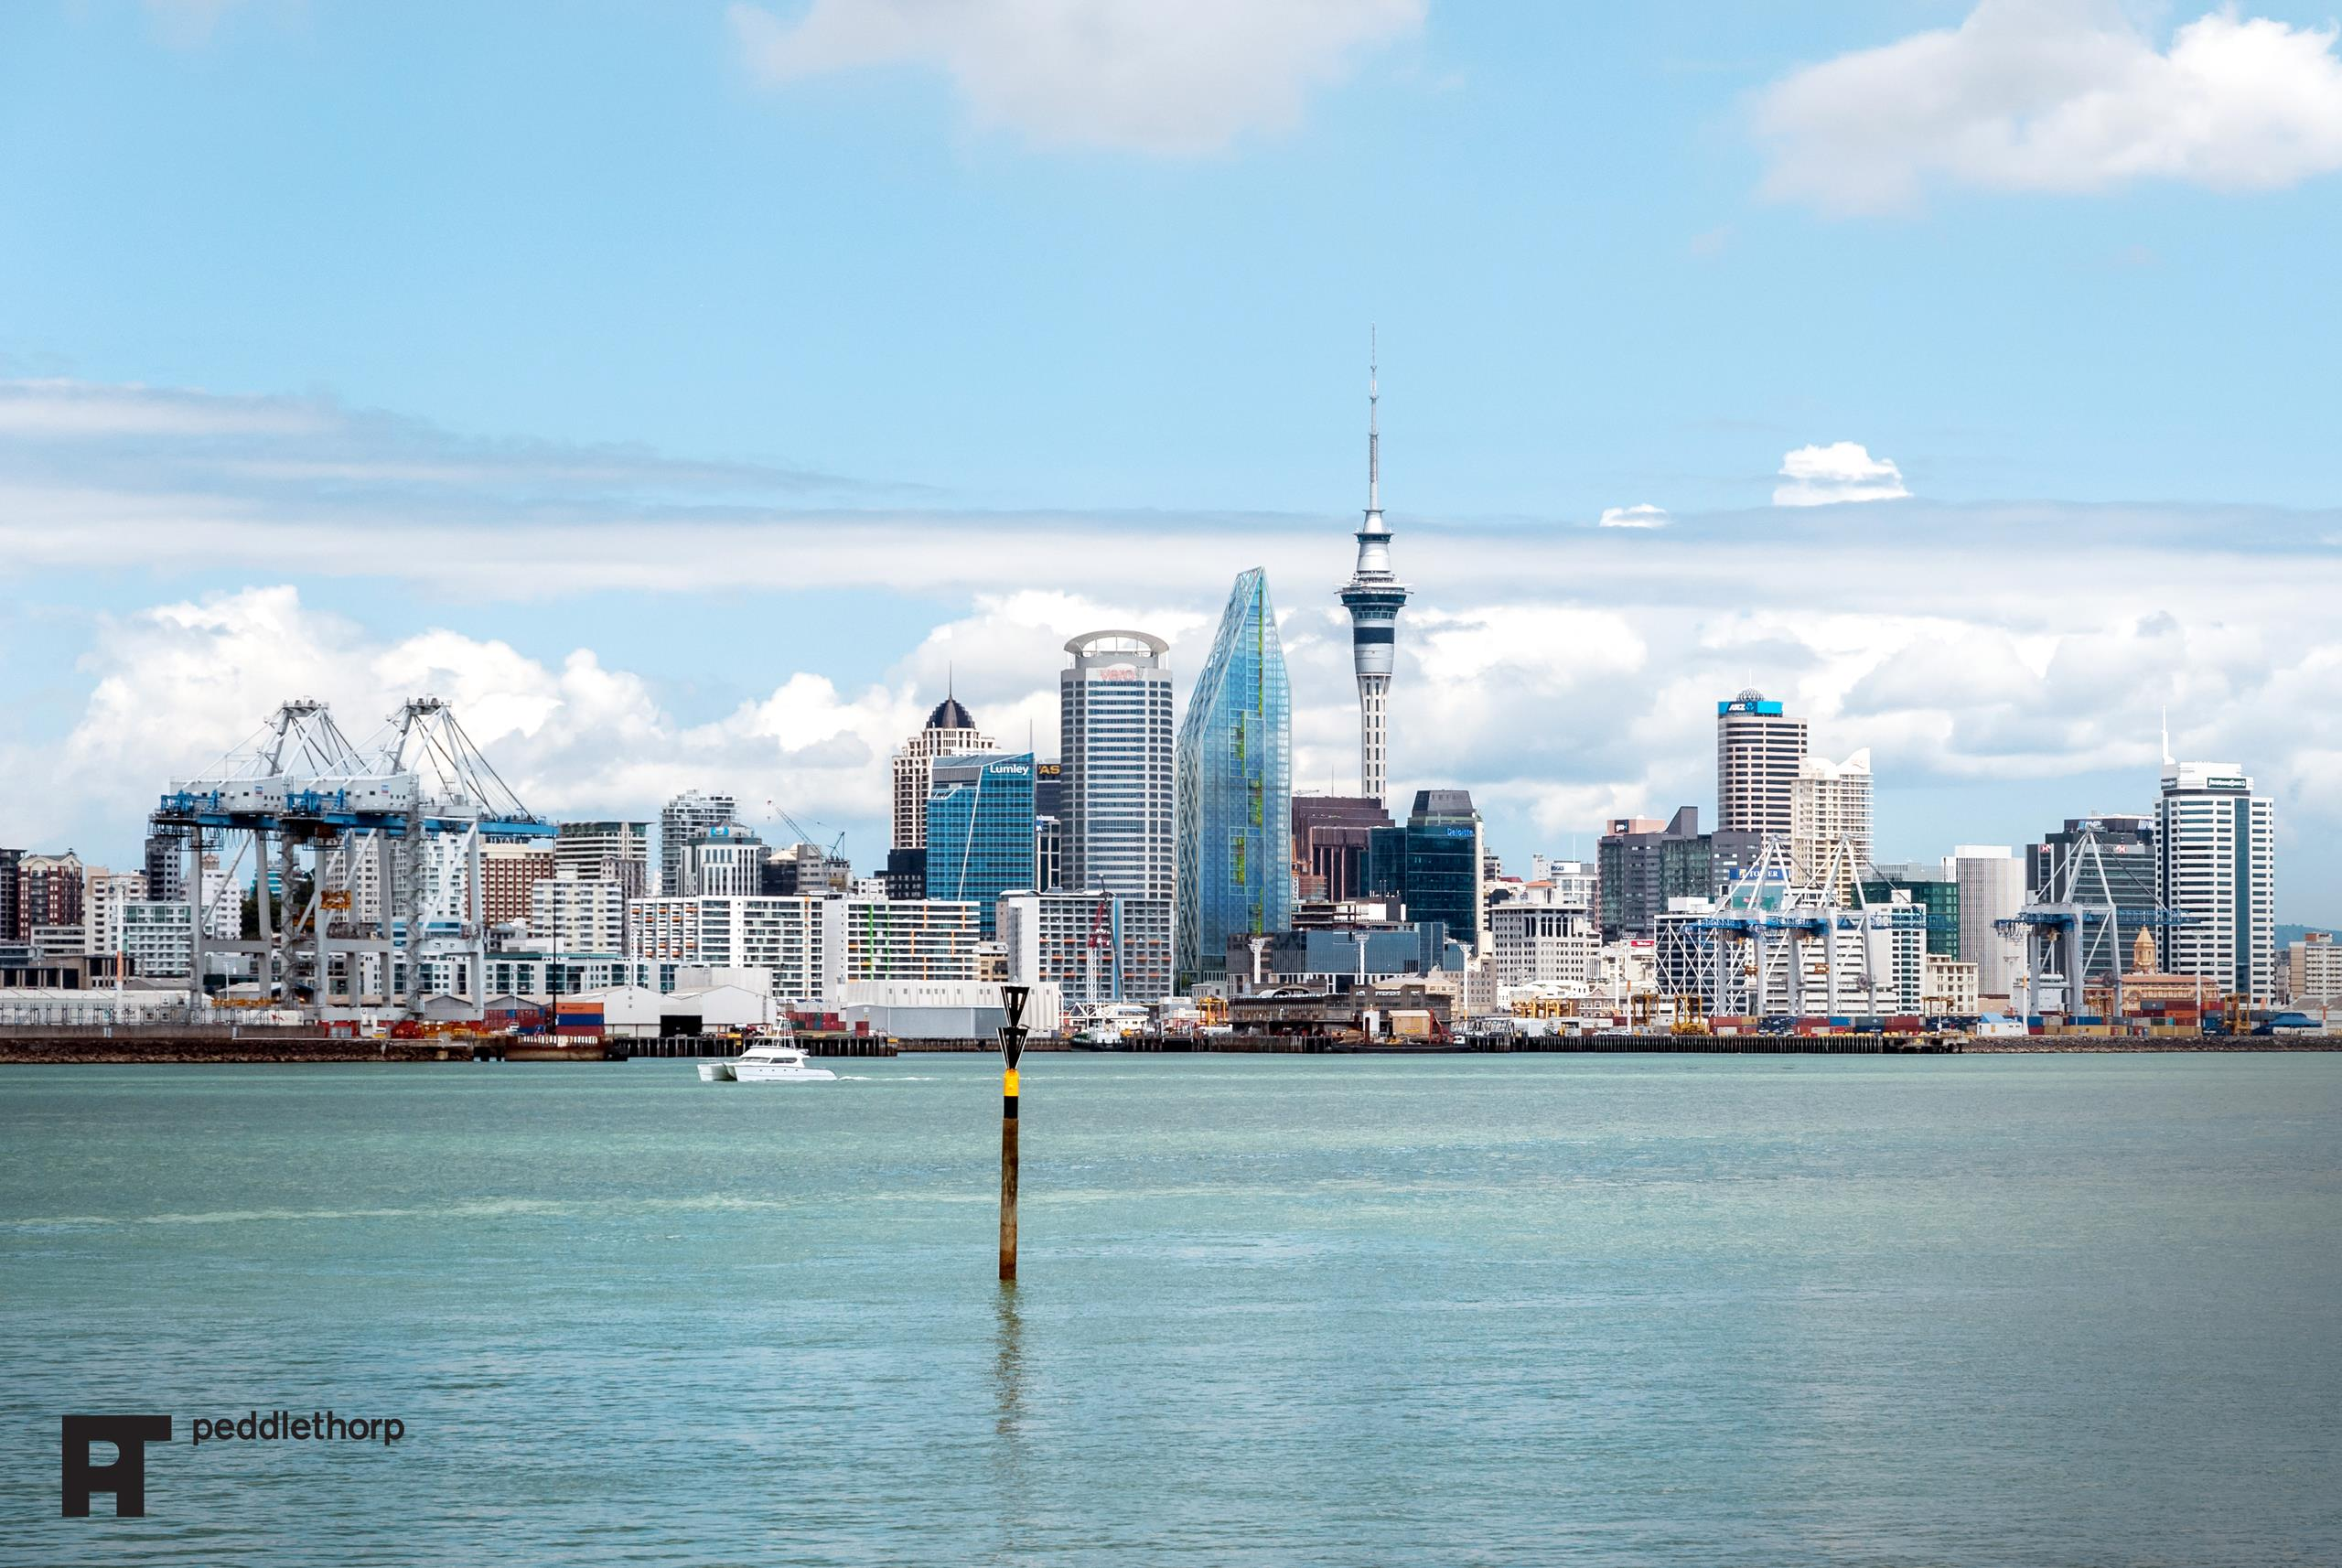 Peddlethorp's artist impression of what Auckland's skyline will look like once the Seascape tower is complete.